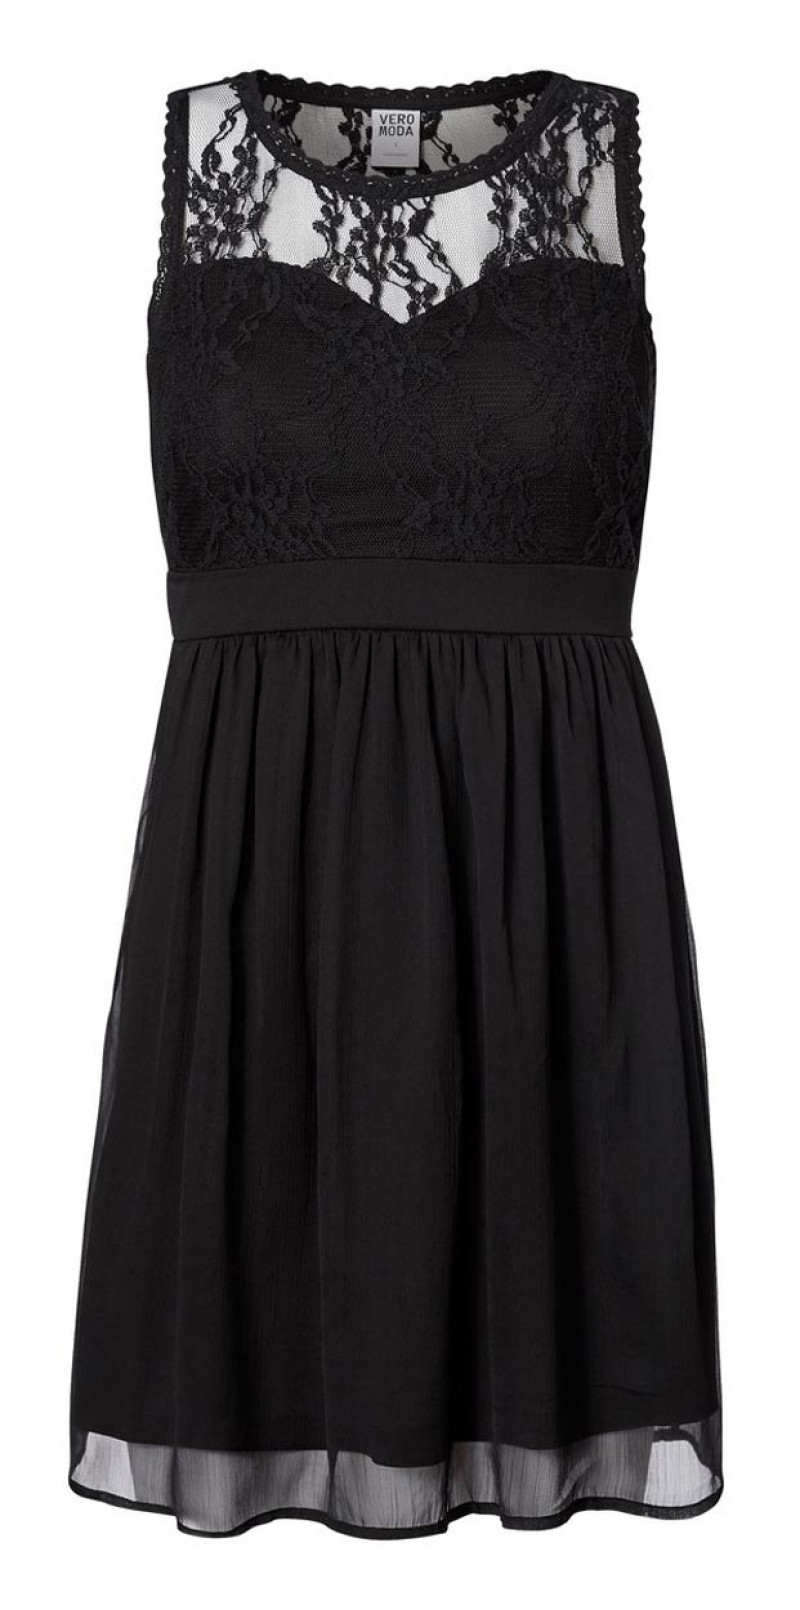 Vero Moda Kleid - Neja s/l mini - Black